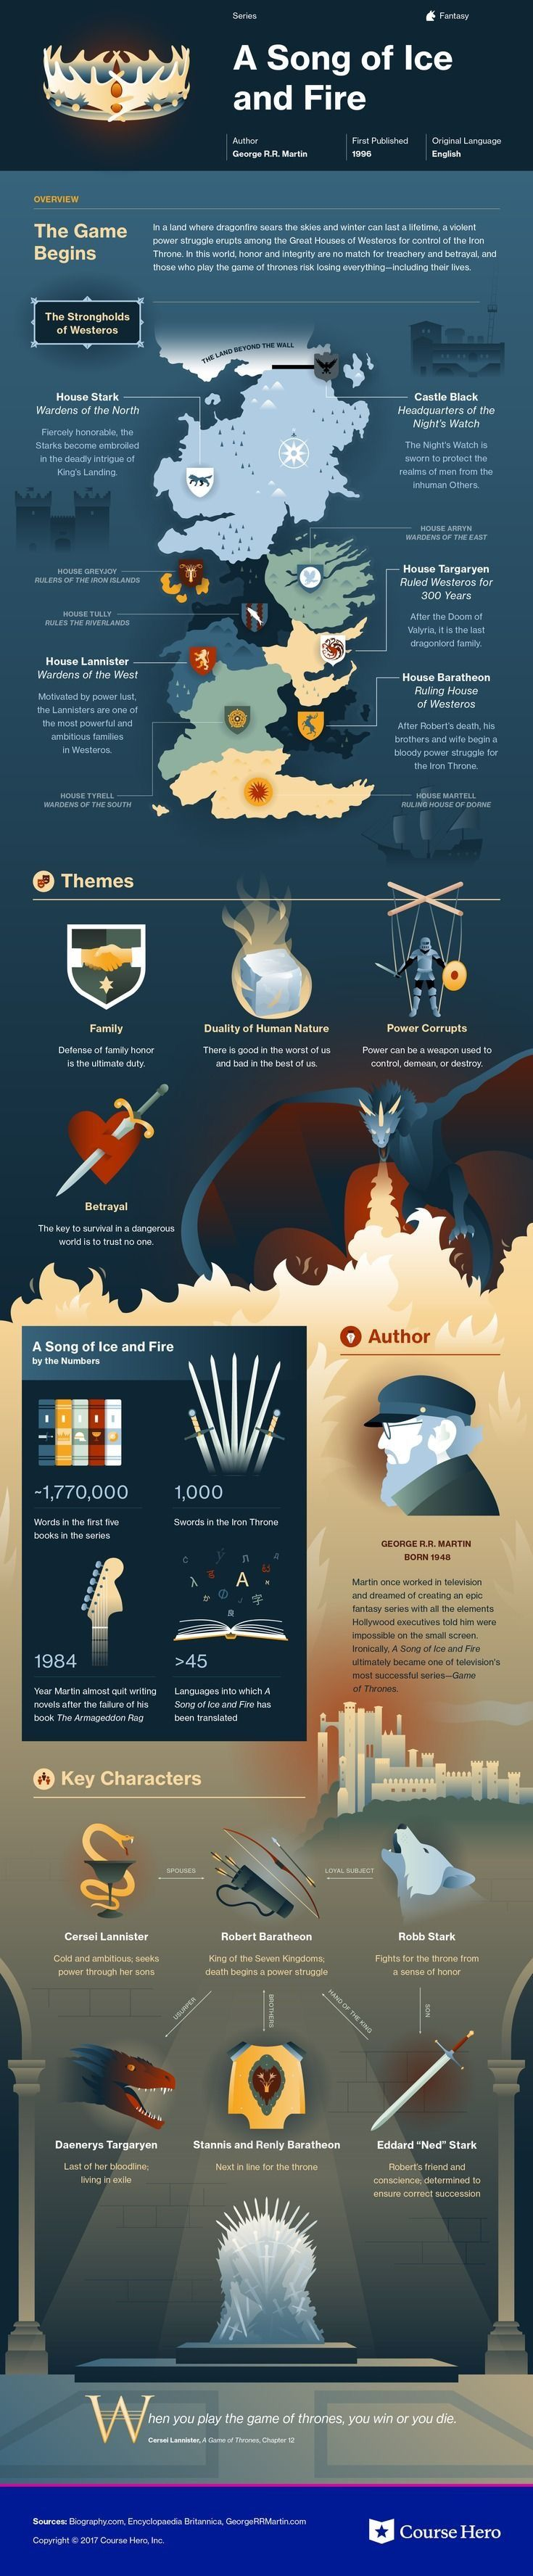 """""""A Song of Ice and Fire"""" Course Hero Infographic"""